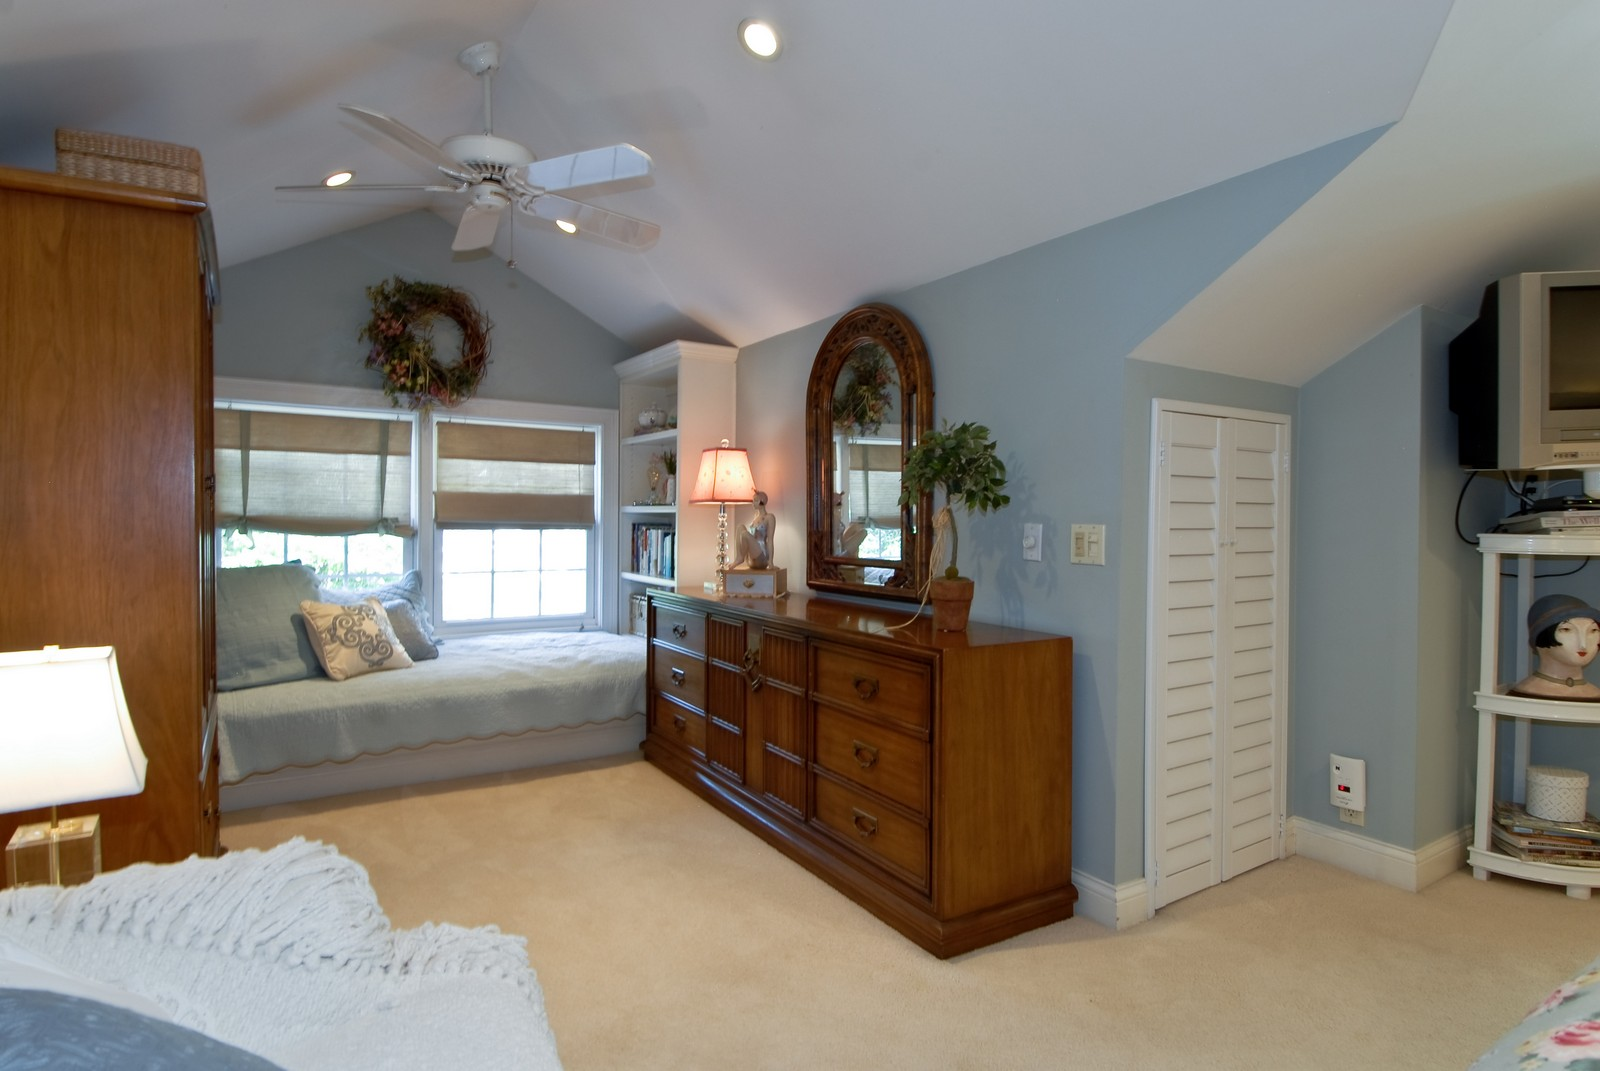 Real Estate Photography - 1031 Pine St, St Charles, IL, 60174 - Master Bedroom